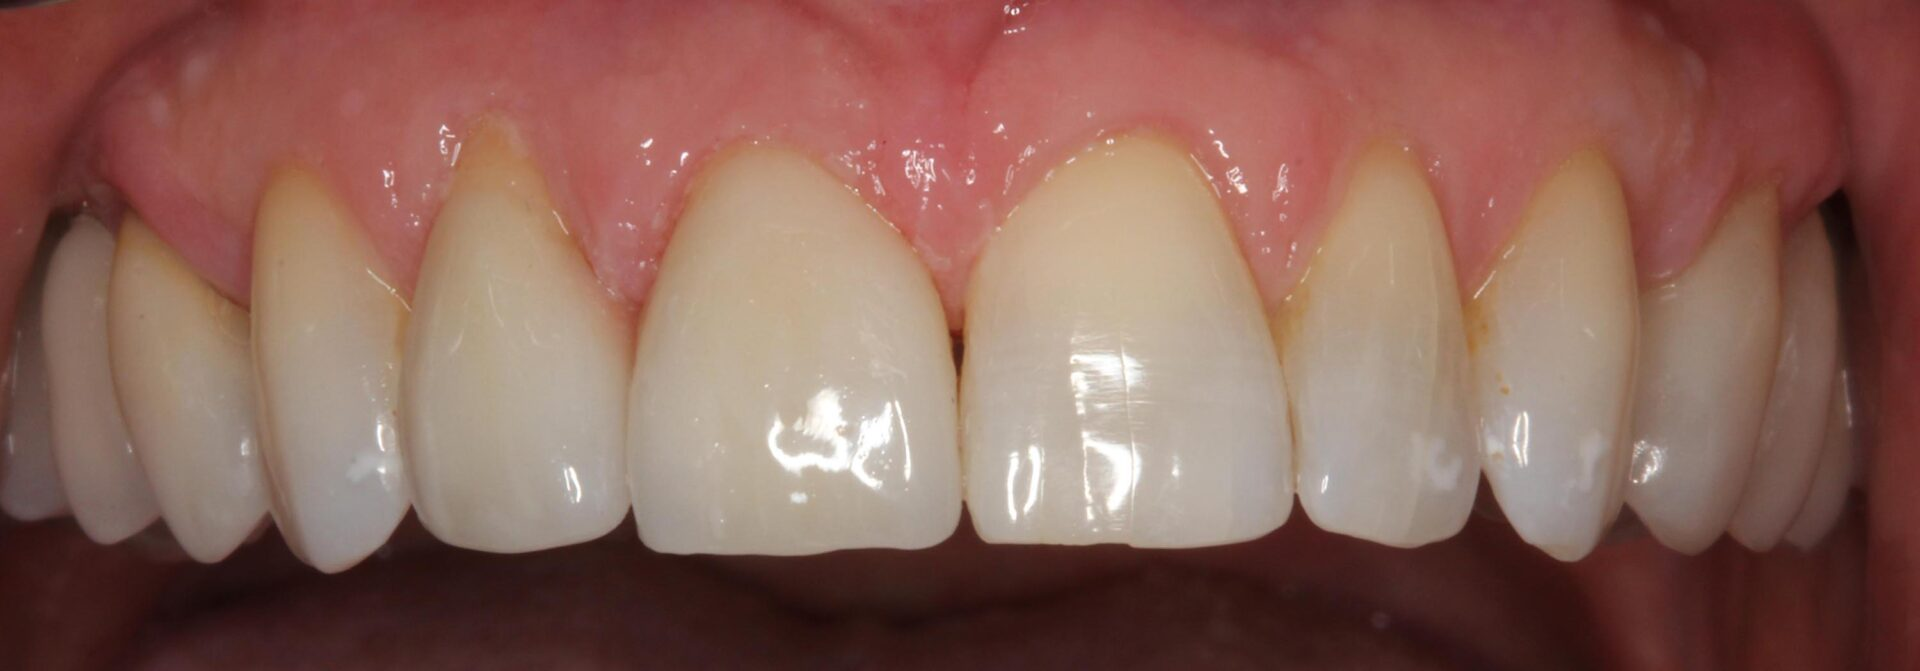 Tooth and crown ceramic restorations